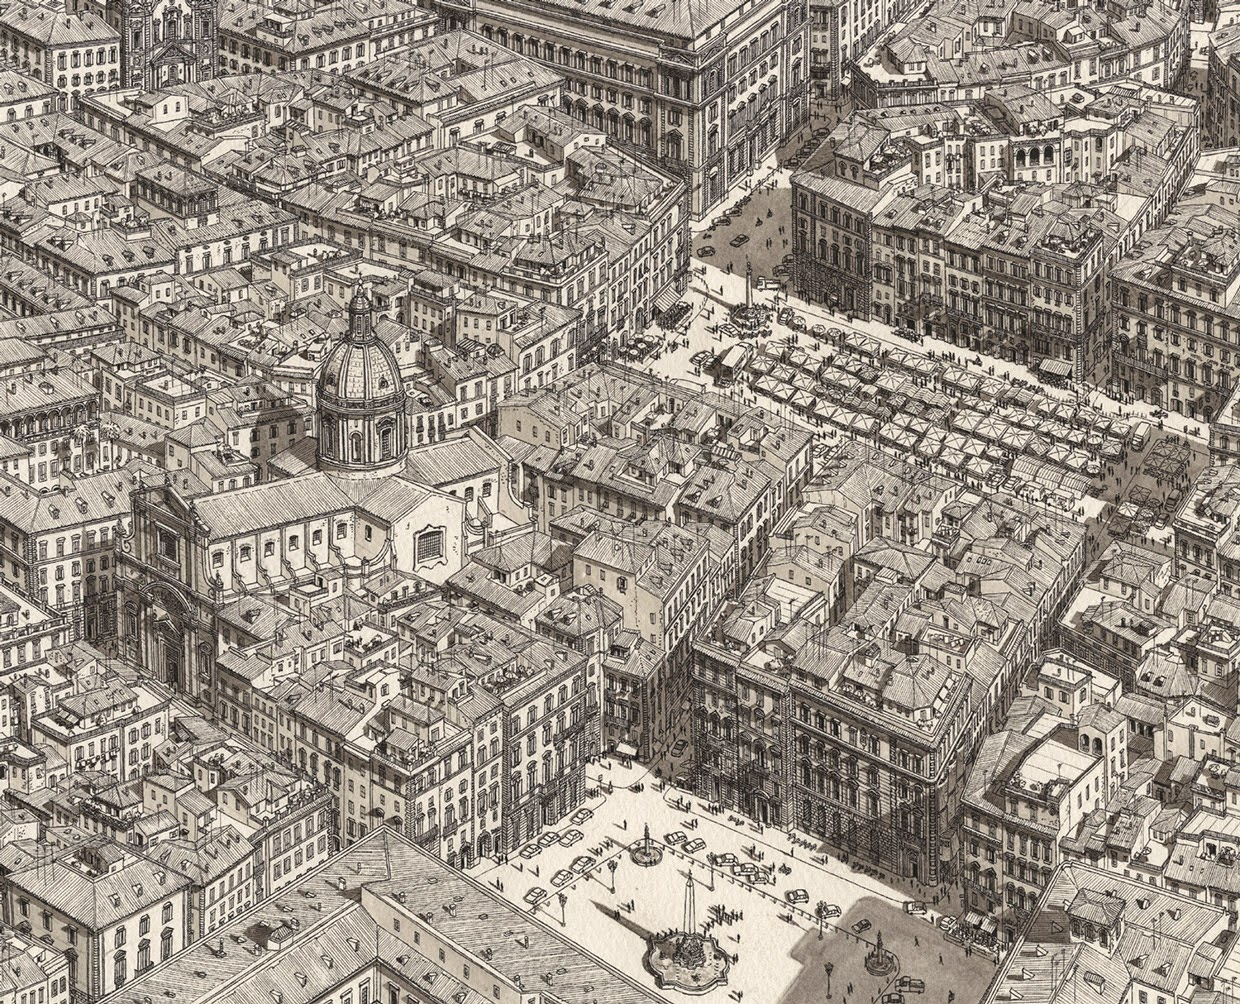 01-Rome-Piazza-Stefan-Bleekrode-Fantasy-in-Detailed-Architectural-Drawings-www-designstack-co